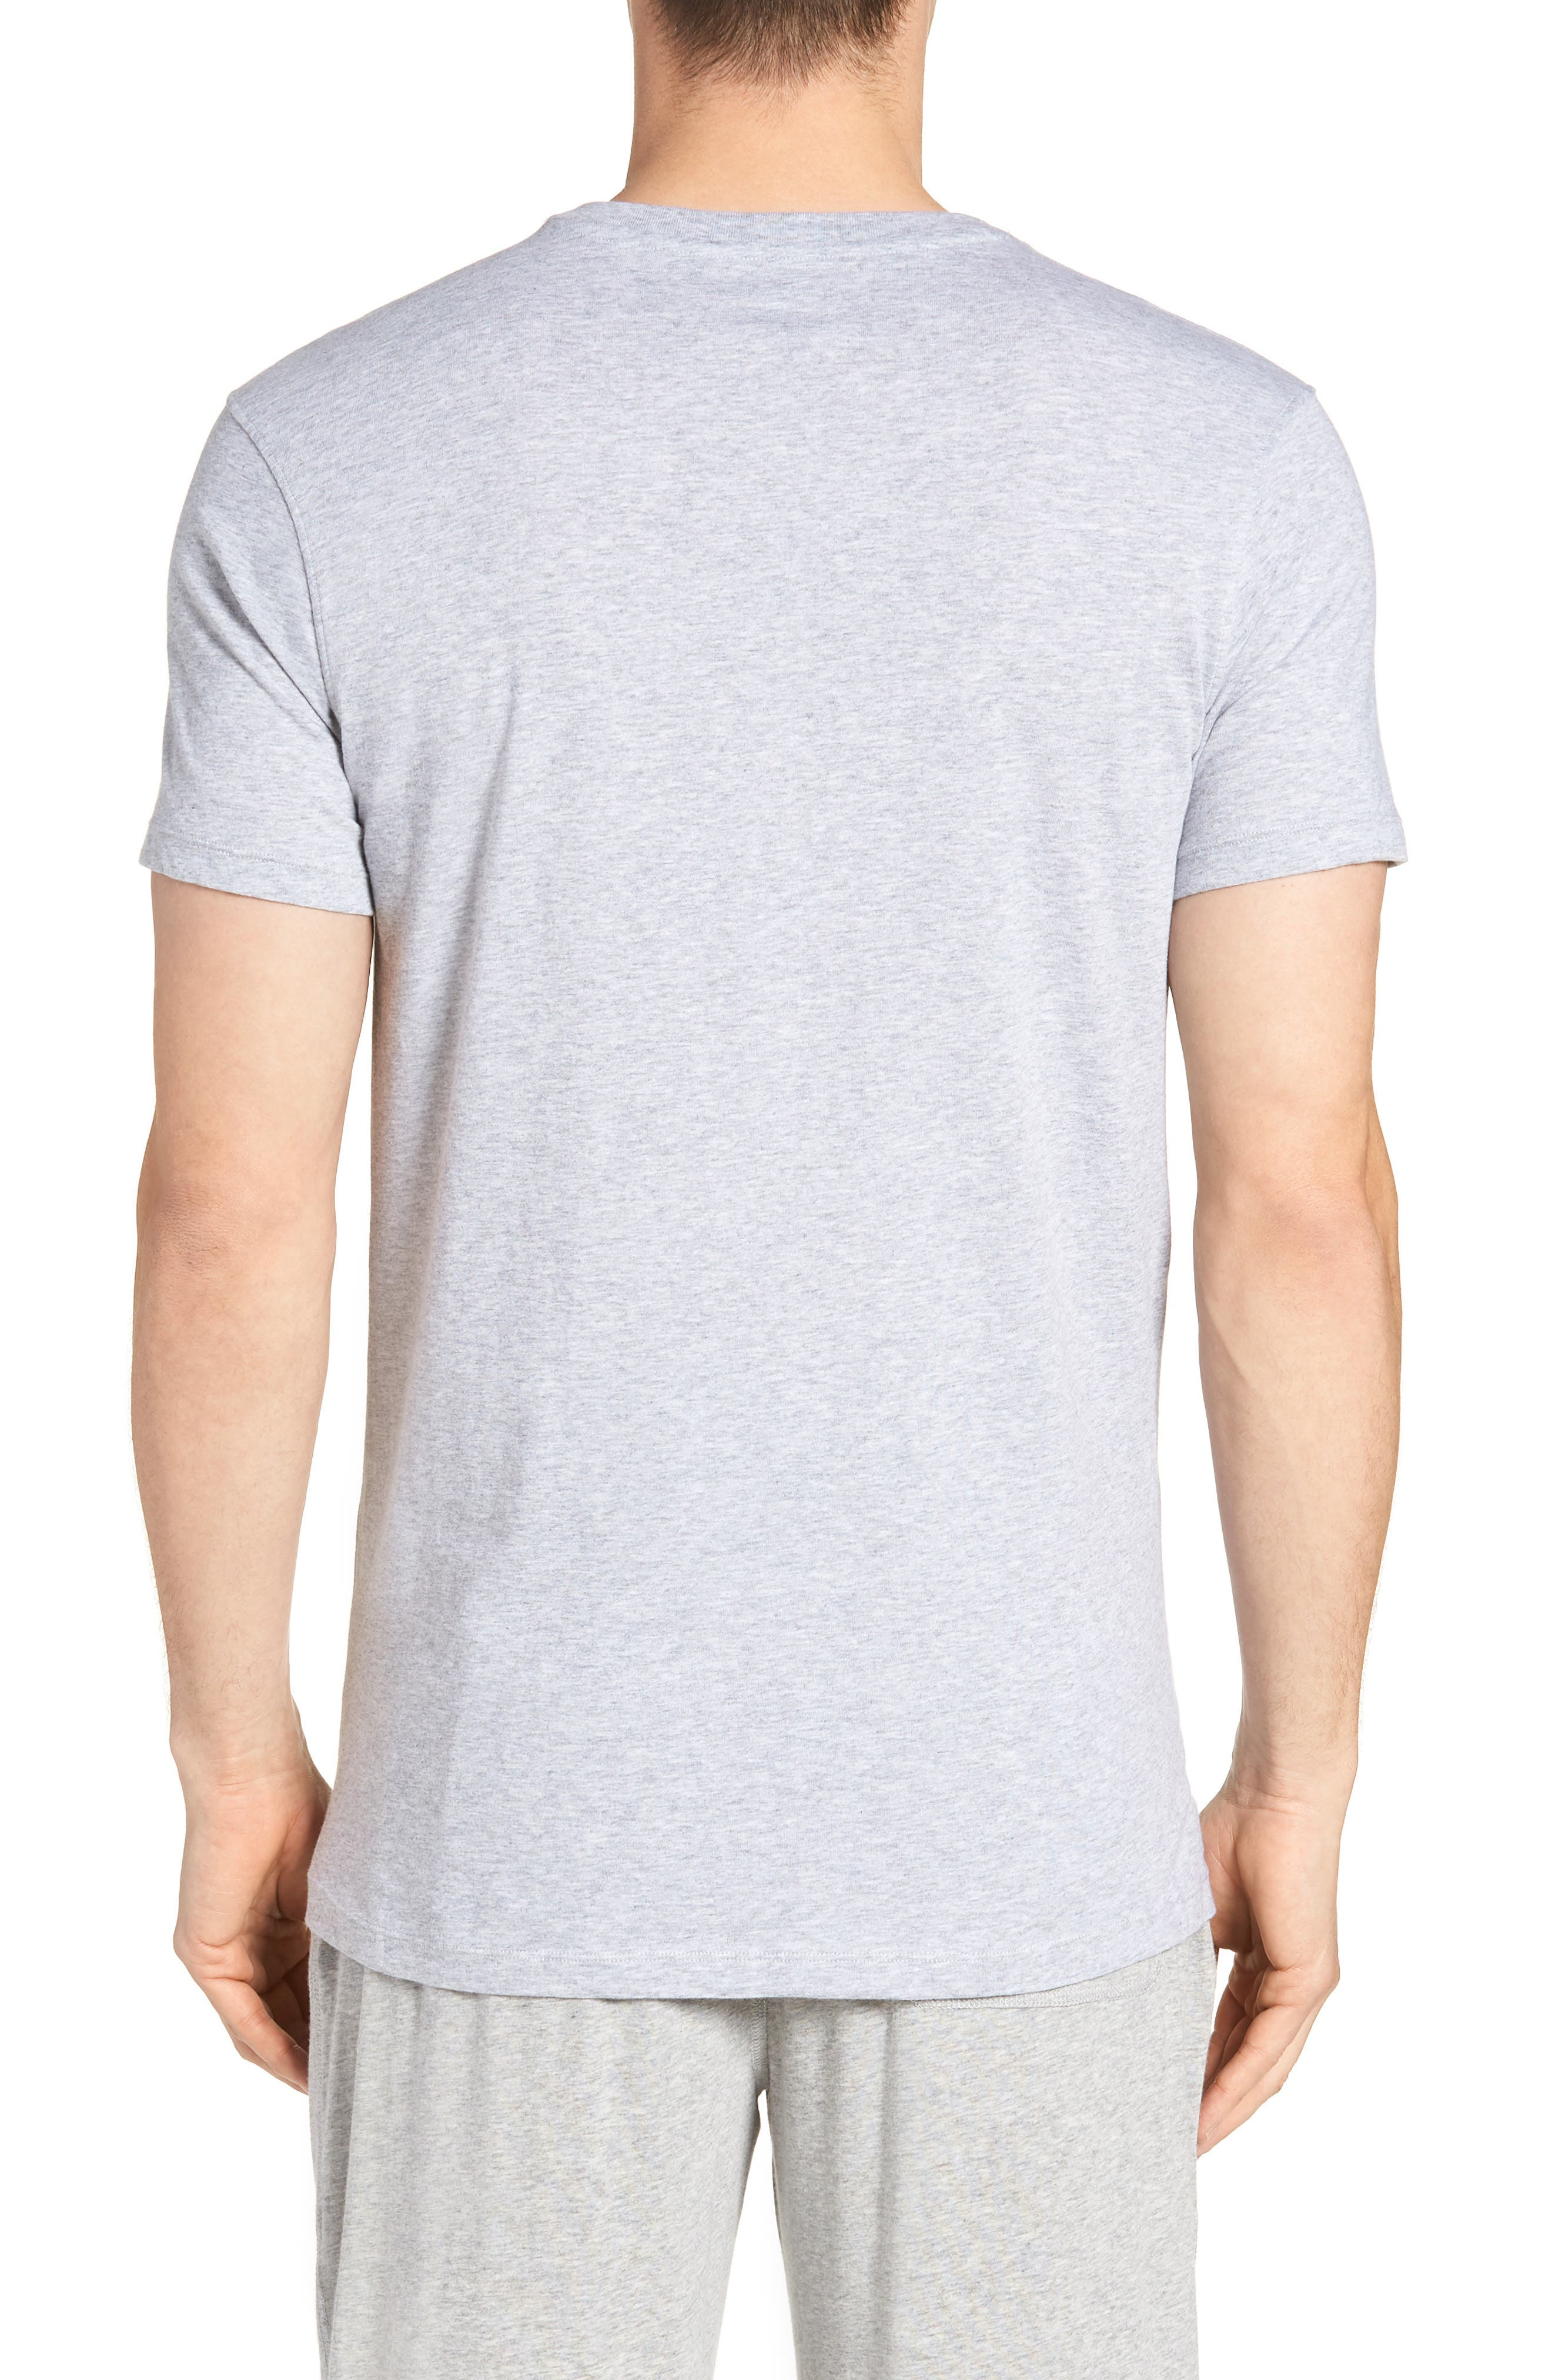 Assorted 3-Pack Supima<sup>®</sup> Cotton V-Neck T-Shirts,                             Alternate thumbnail 3, color,                             Black/ Grey/ White